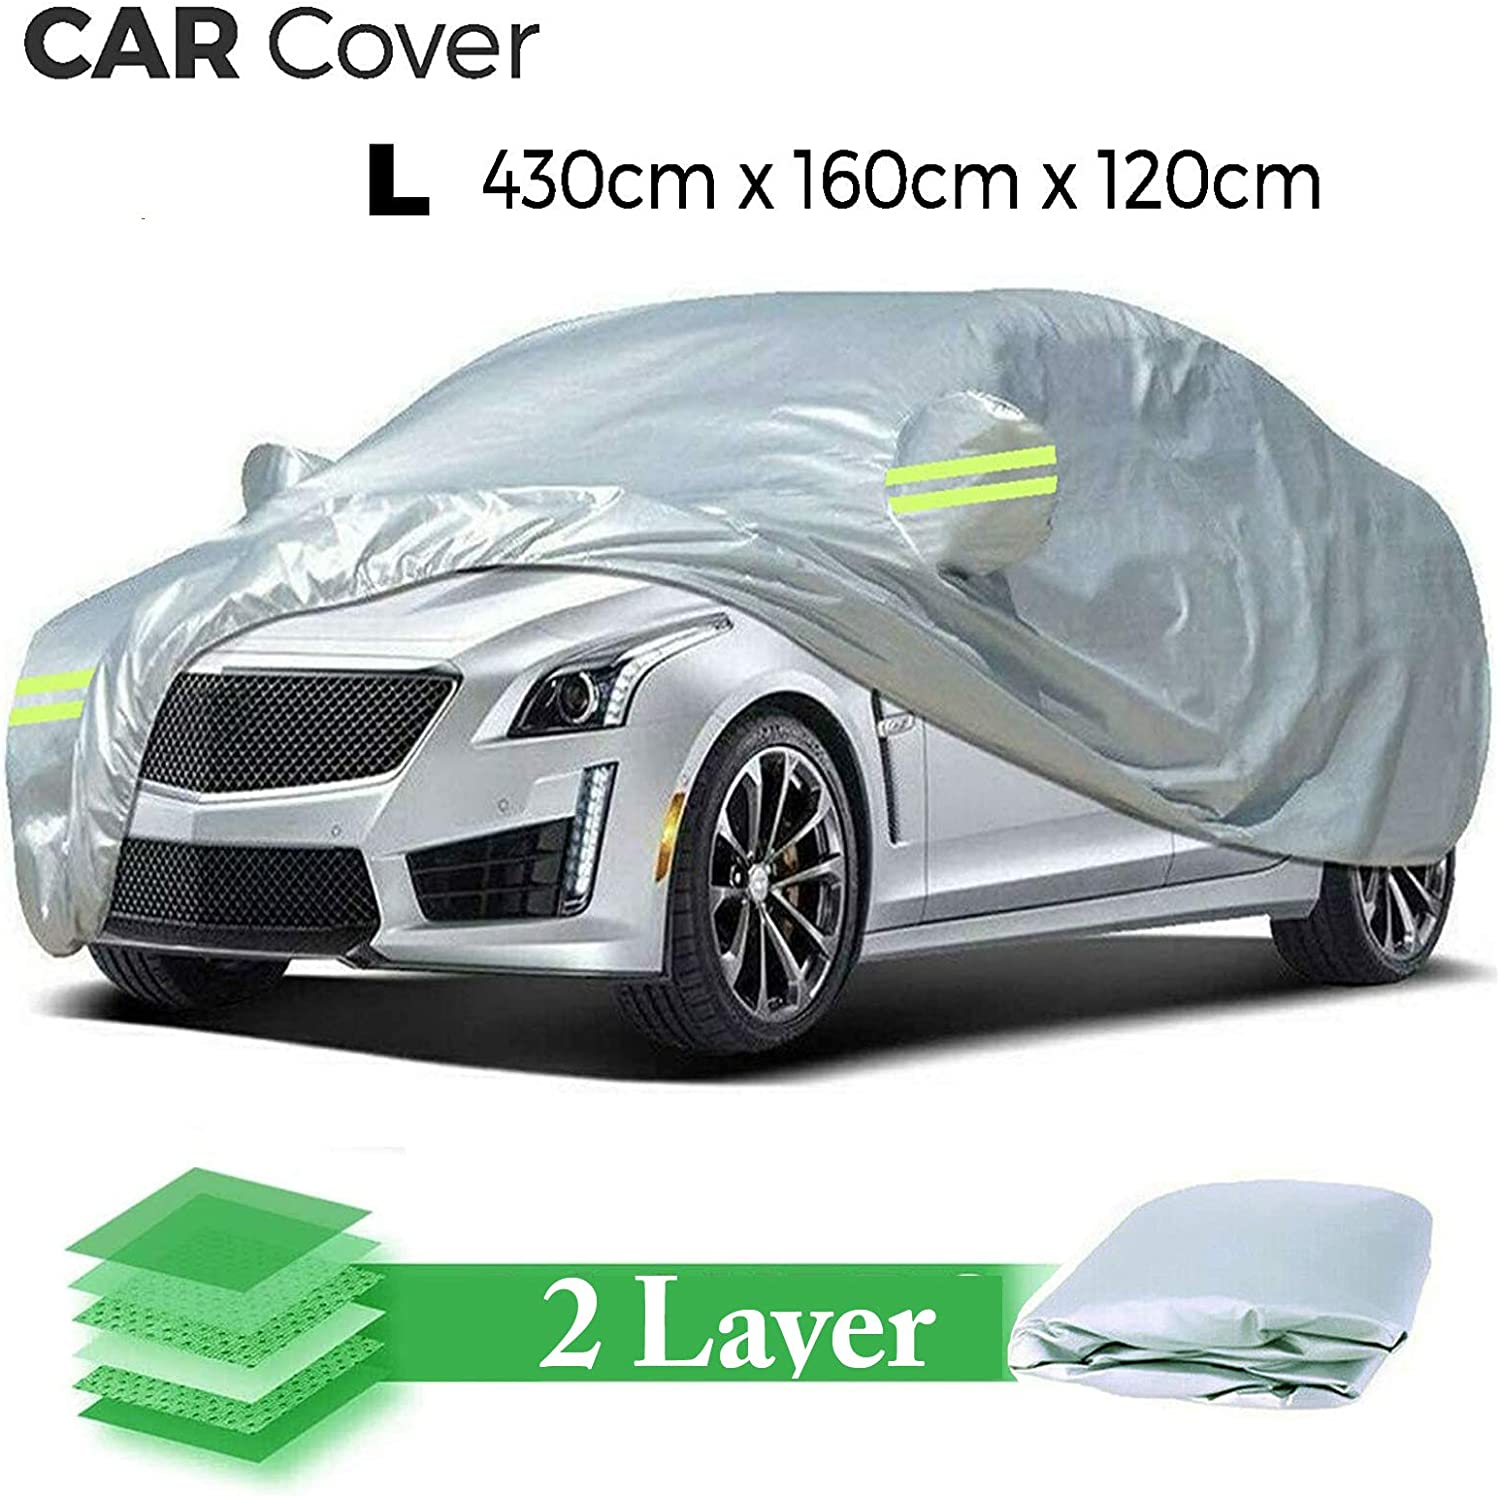 Car Cover Waterproof Rain Dust Sun UV All Weather Waterproof Breathable Protection Seat 2 Layer Cotton Covers for Automobiles Indoor Outdoor Heavy Duty Full Car Cover With Carry Bag